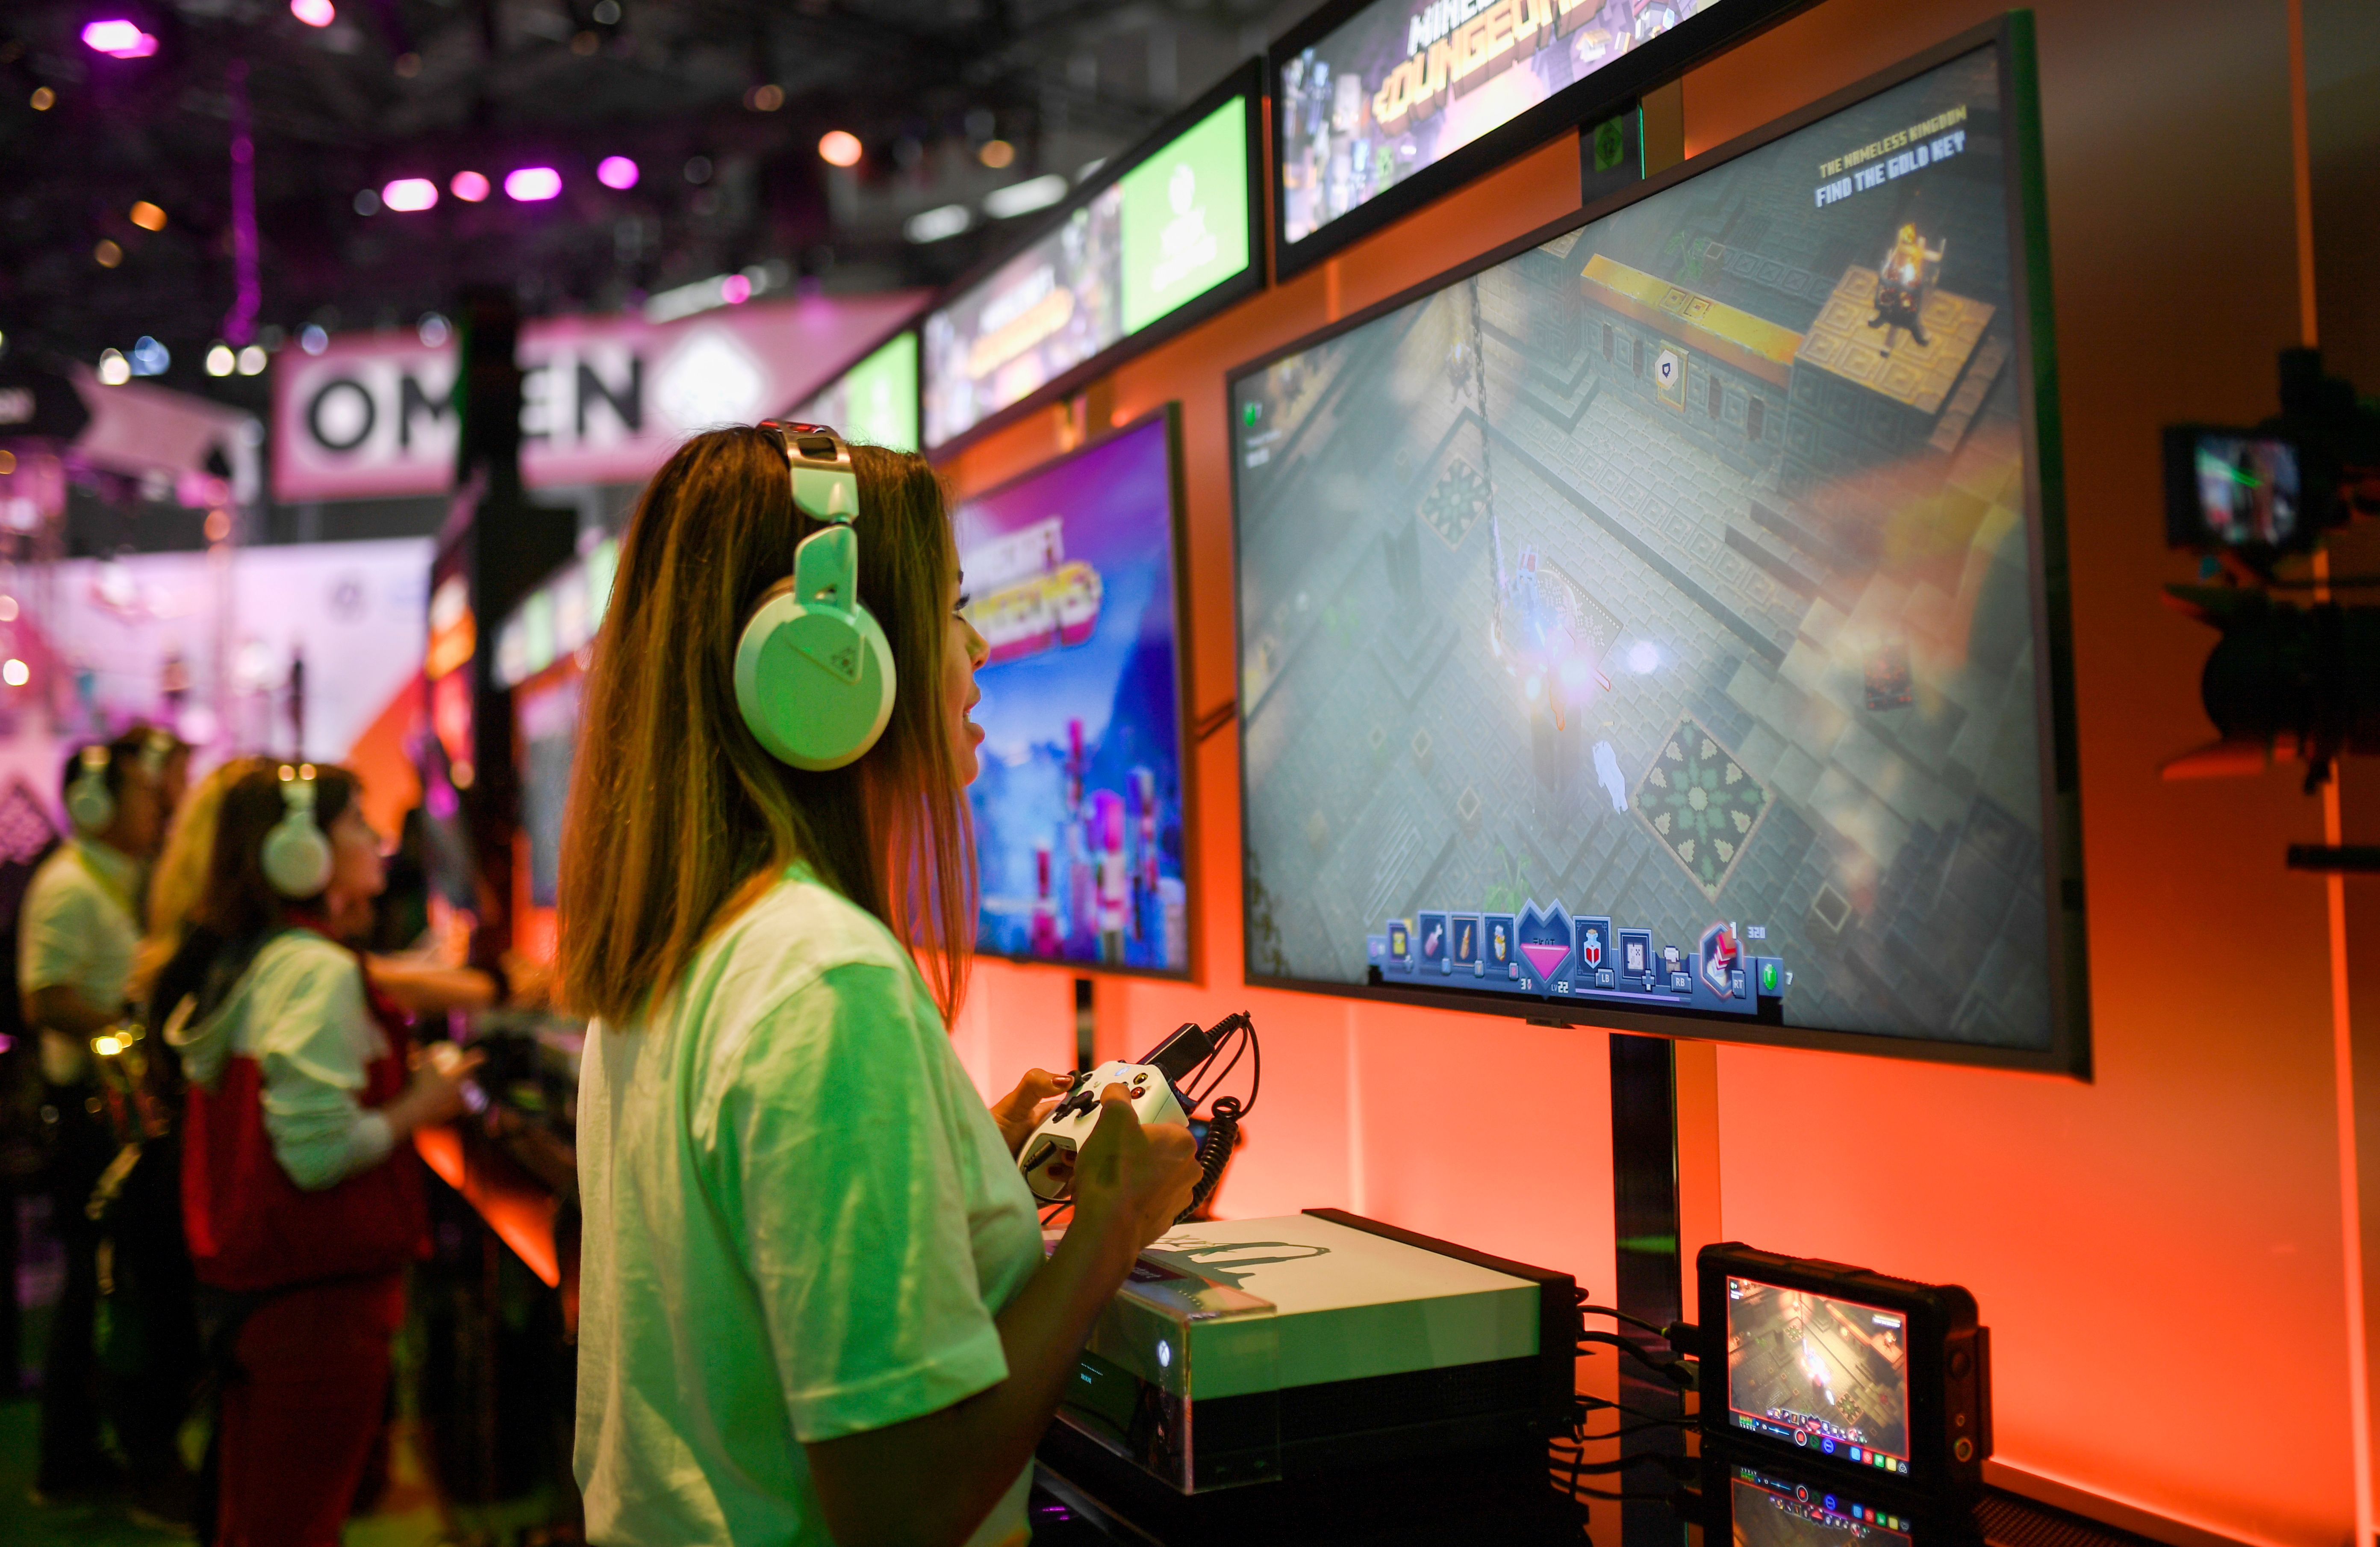 A woman wearing headphones plays at the Xbox stand during the media day of the Gamescom video games trade fair in Cologne, Germany.